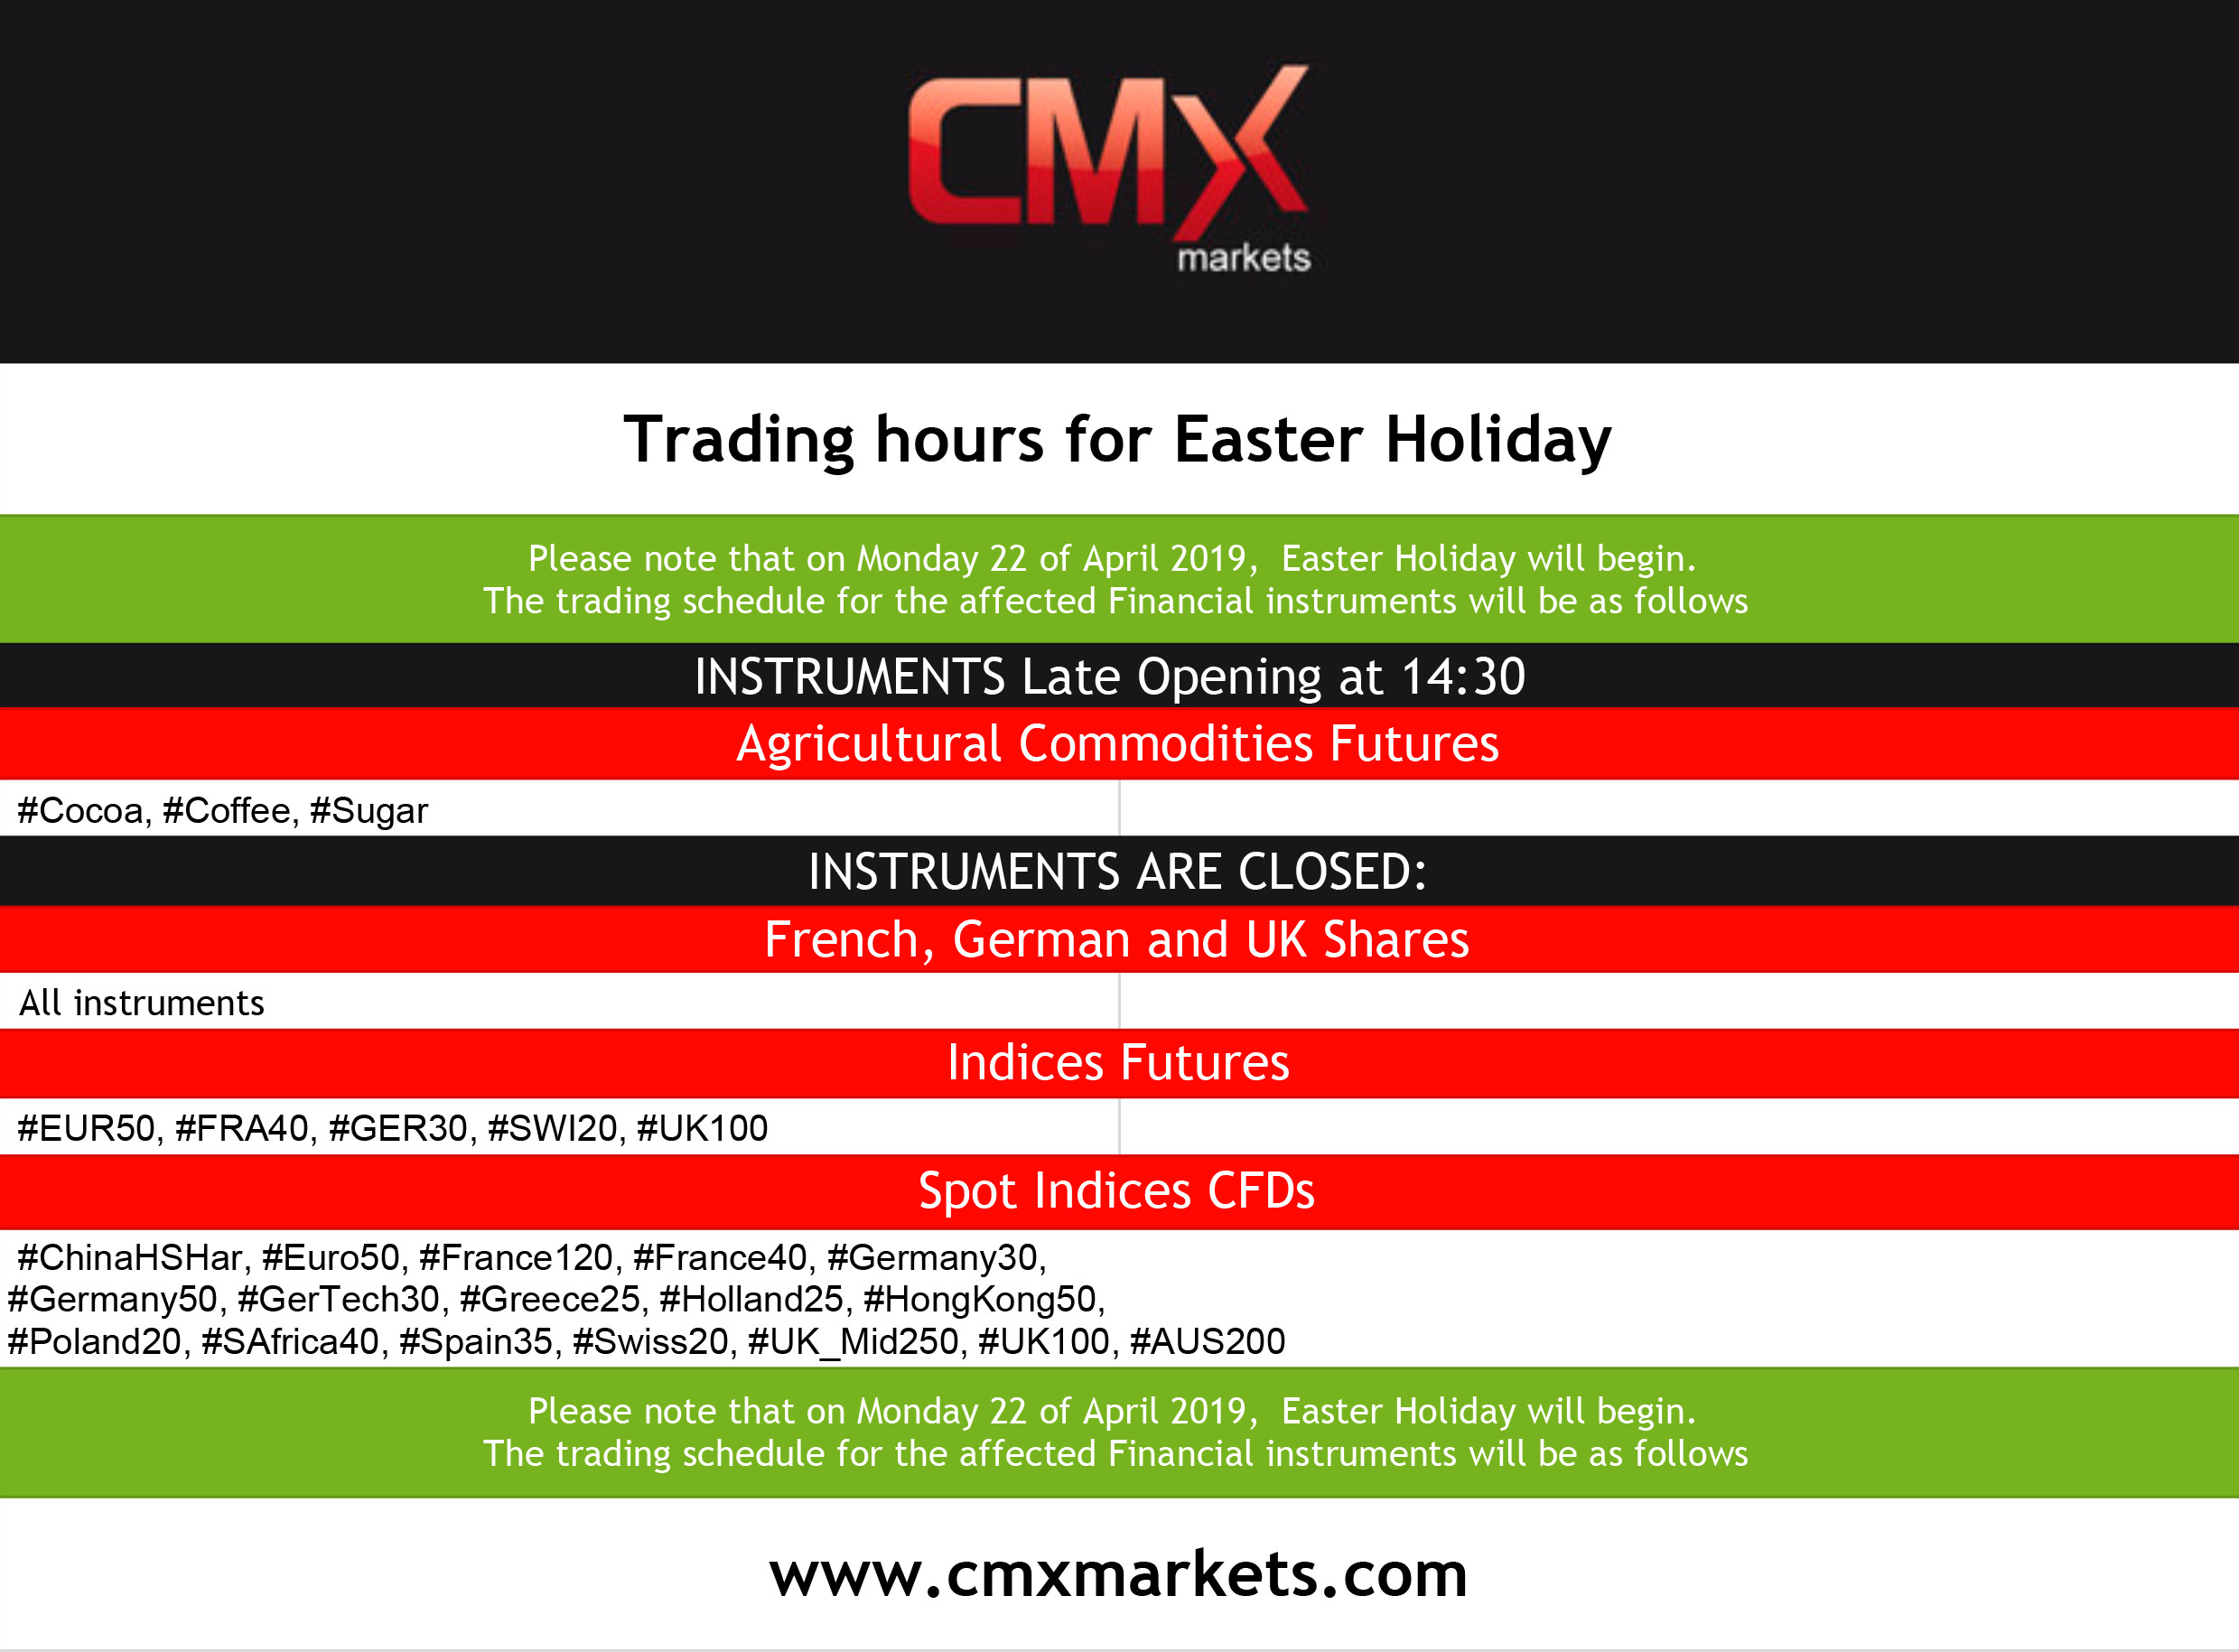 Markets Holidays – Online Forex Trading, Currency Trading, FX Broker